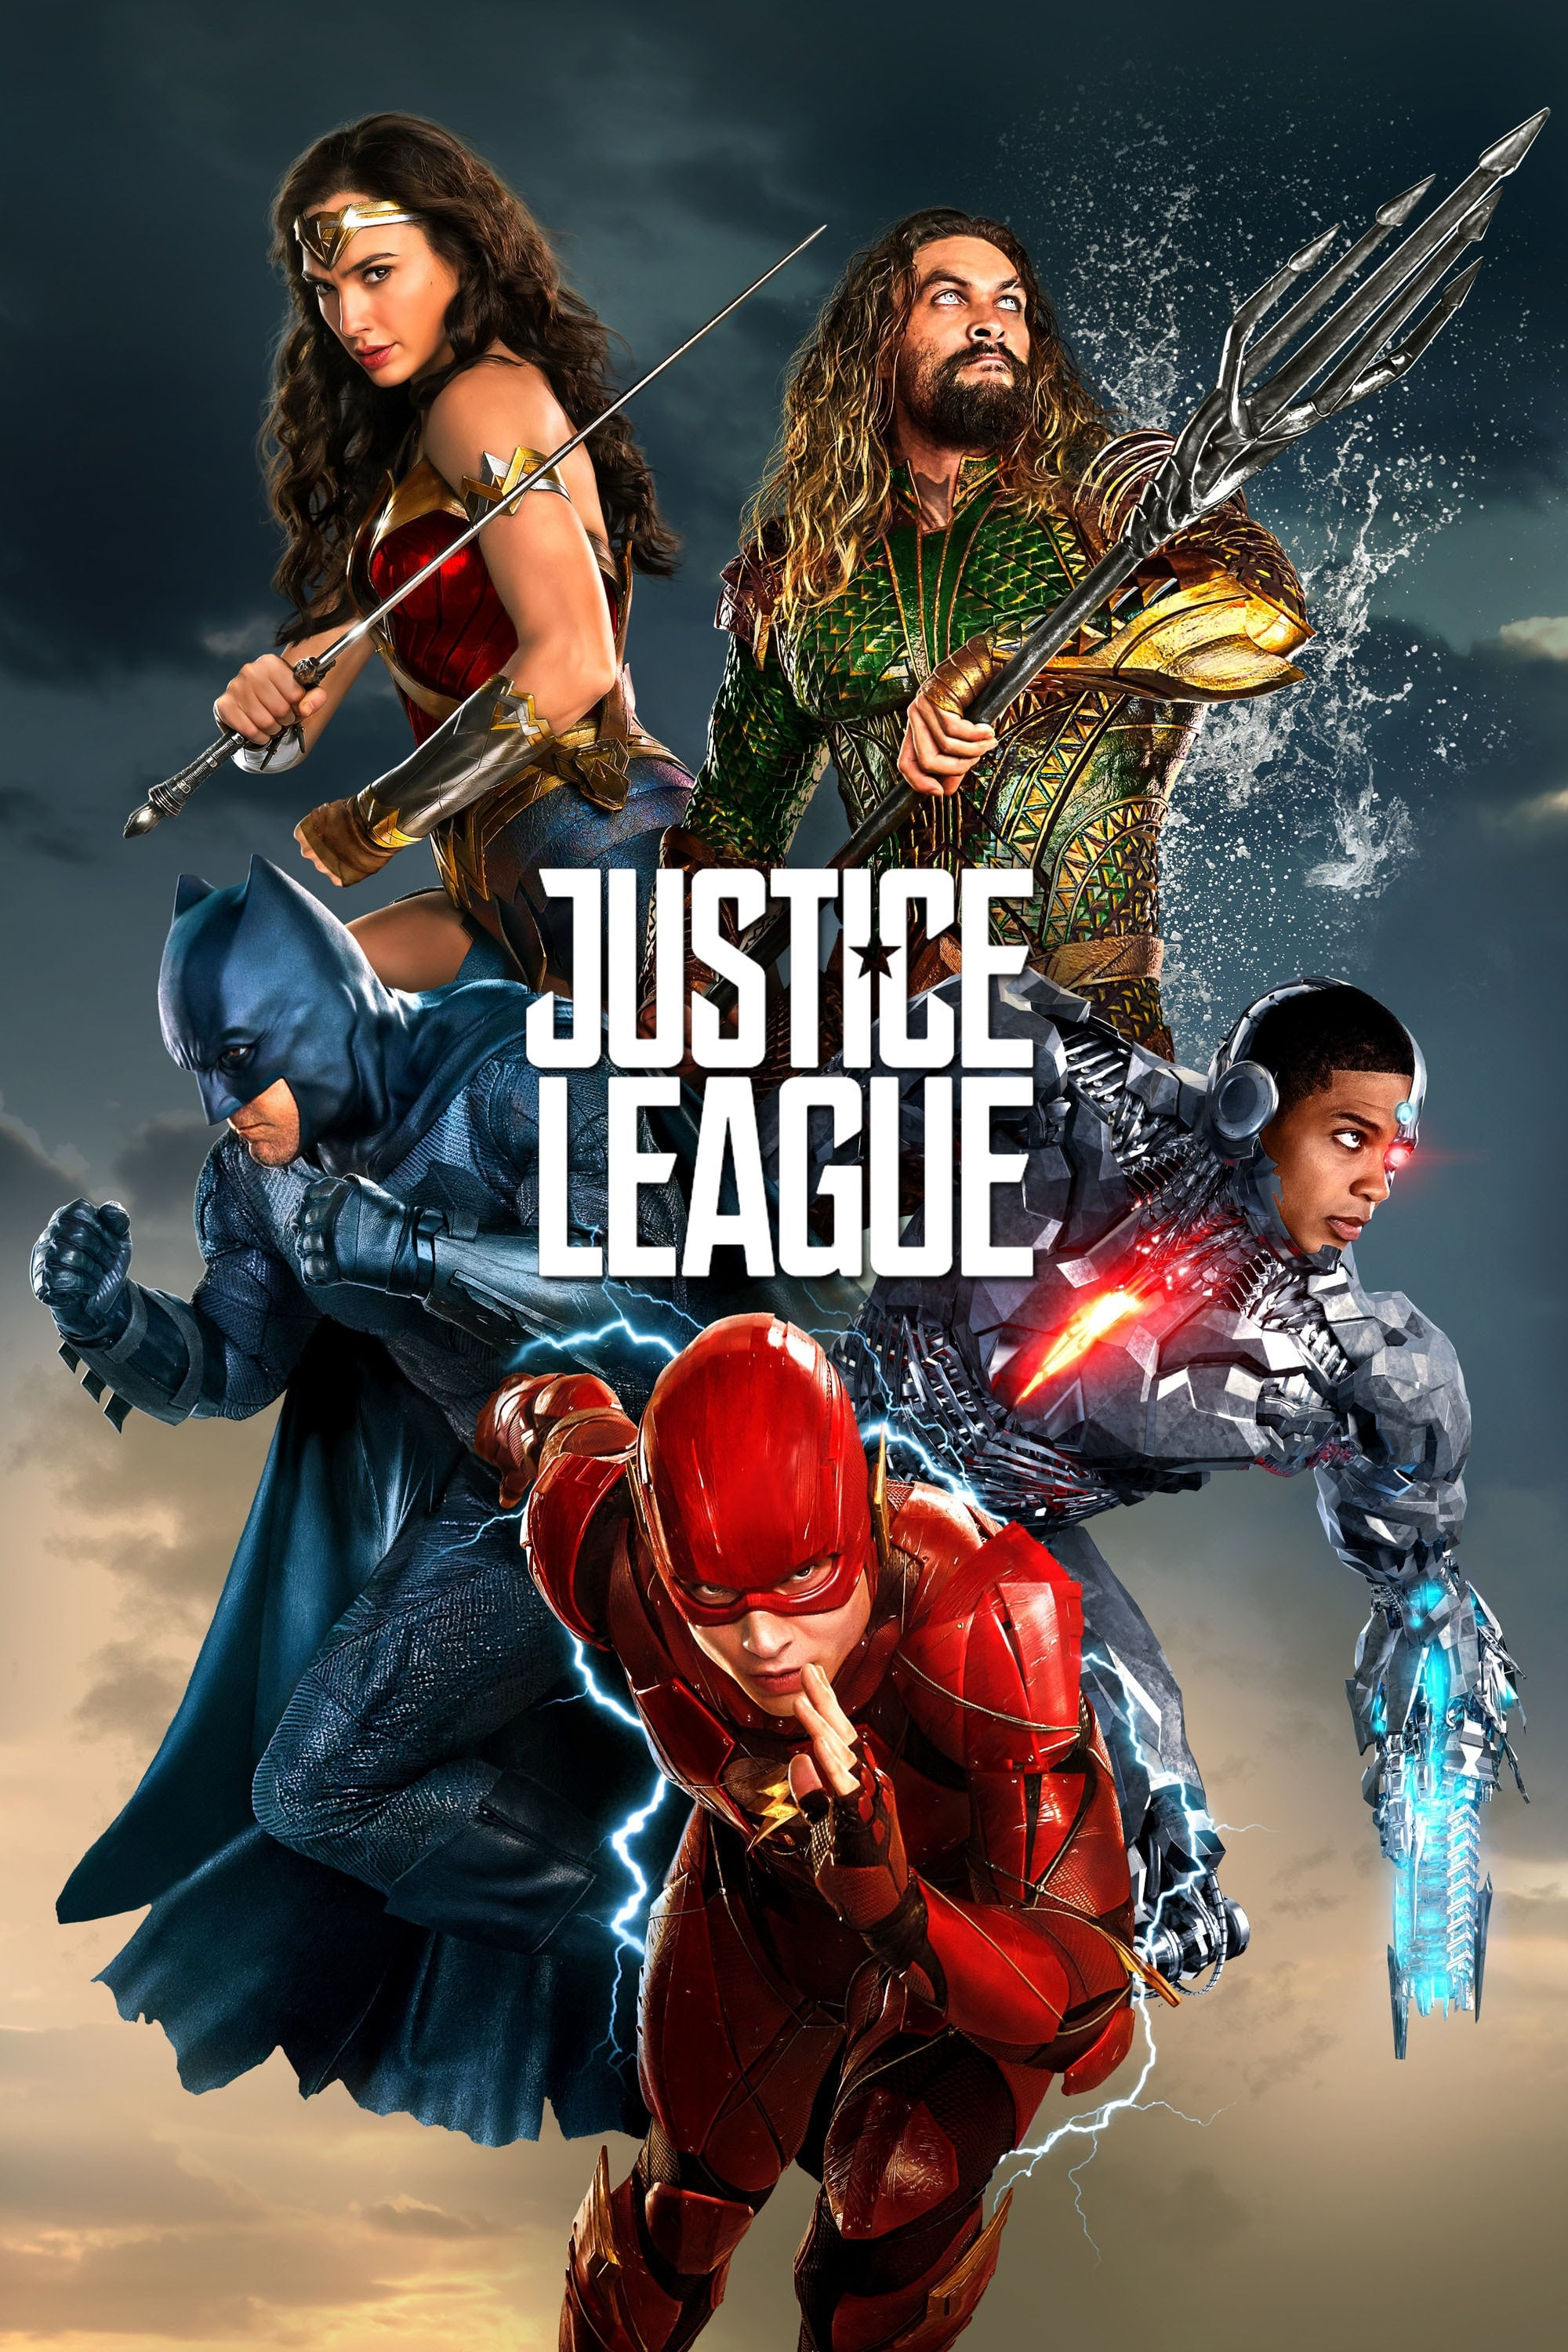 Justice League (2017) [Hindi 5.1+English 5.1] | x265 10Bit BluRay | 1080p | 720p | 480p | Download | Watch Online | GDrive | Direct Links